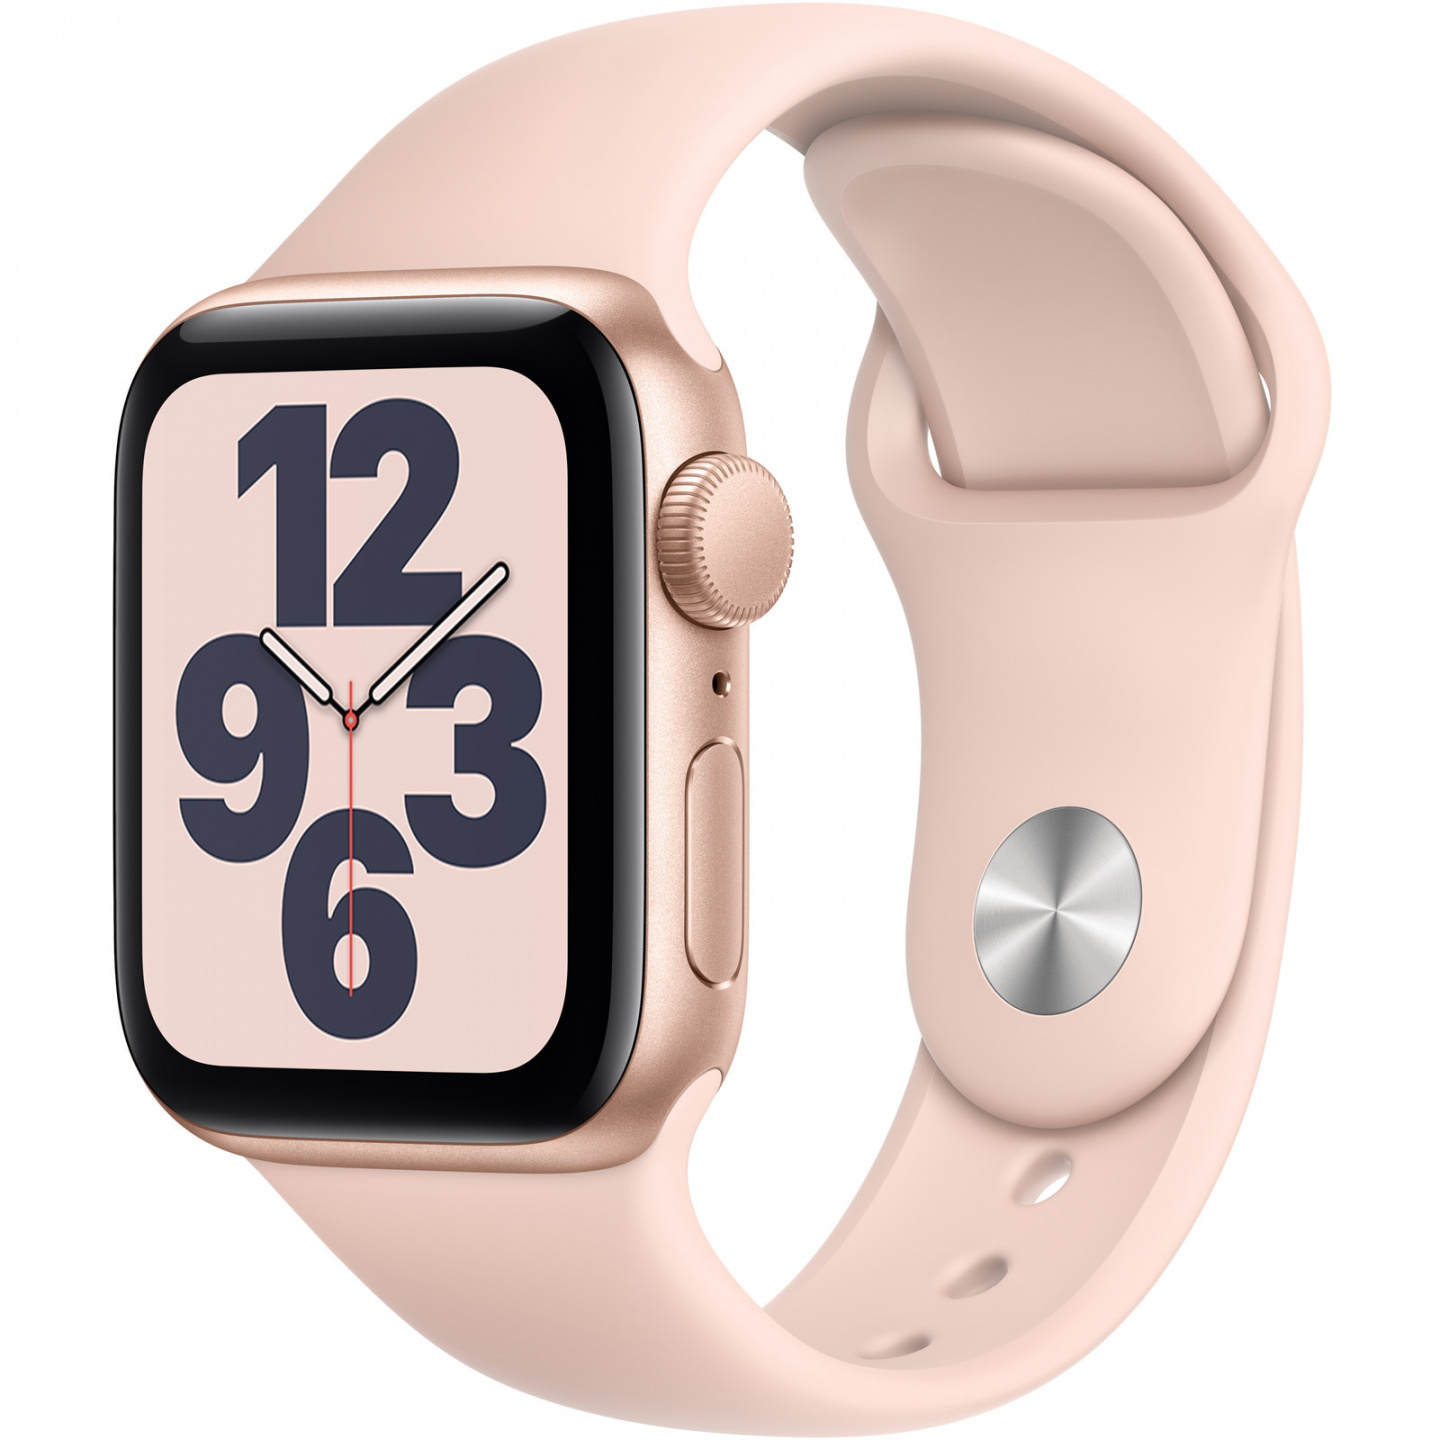 Picture of Apple Watch in Gold with pink strap